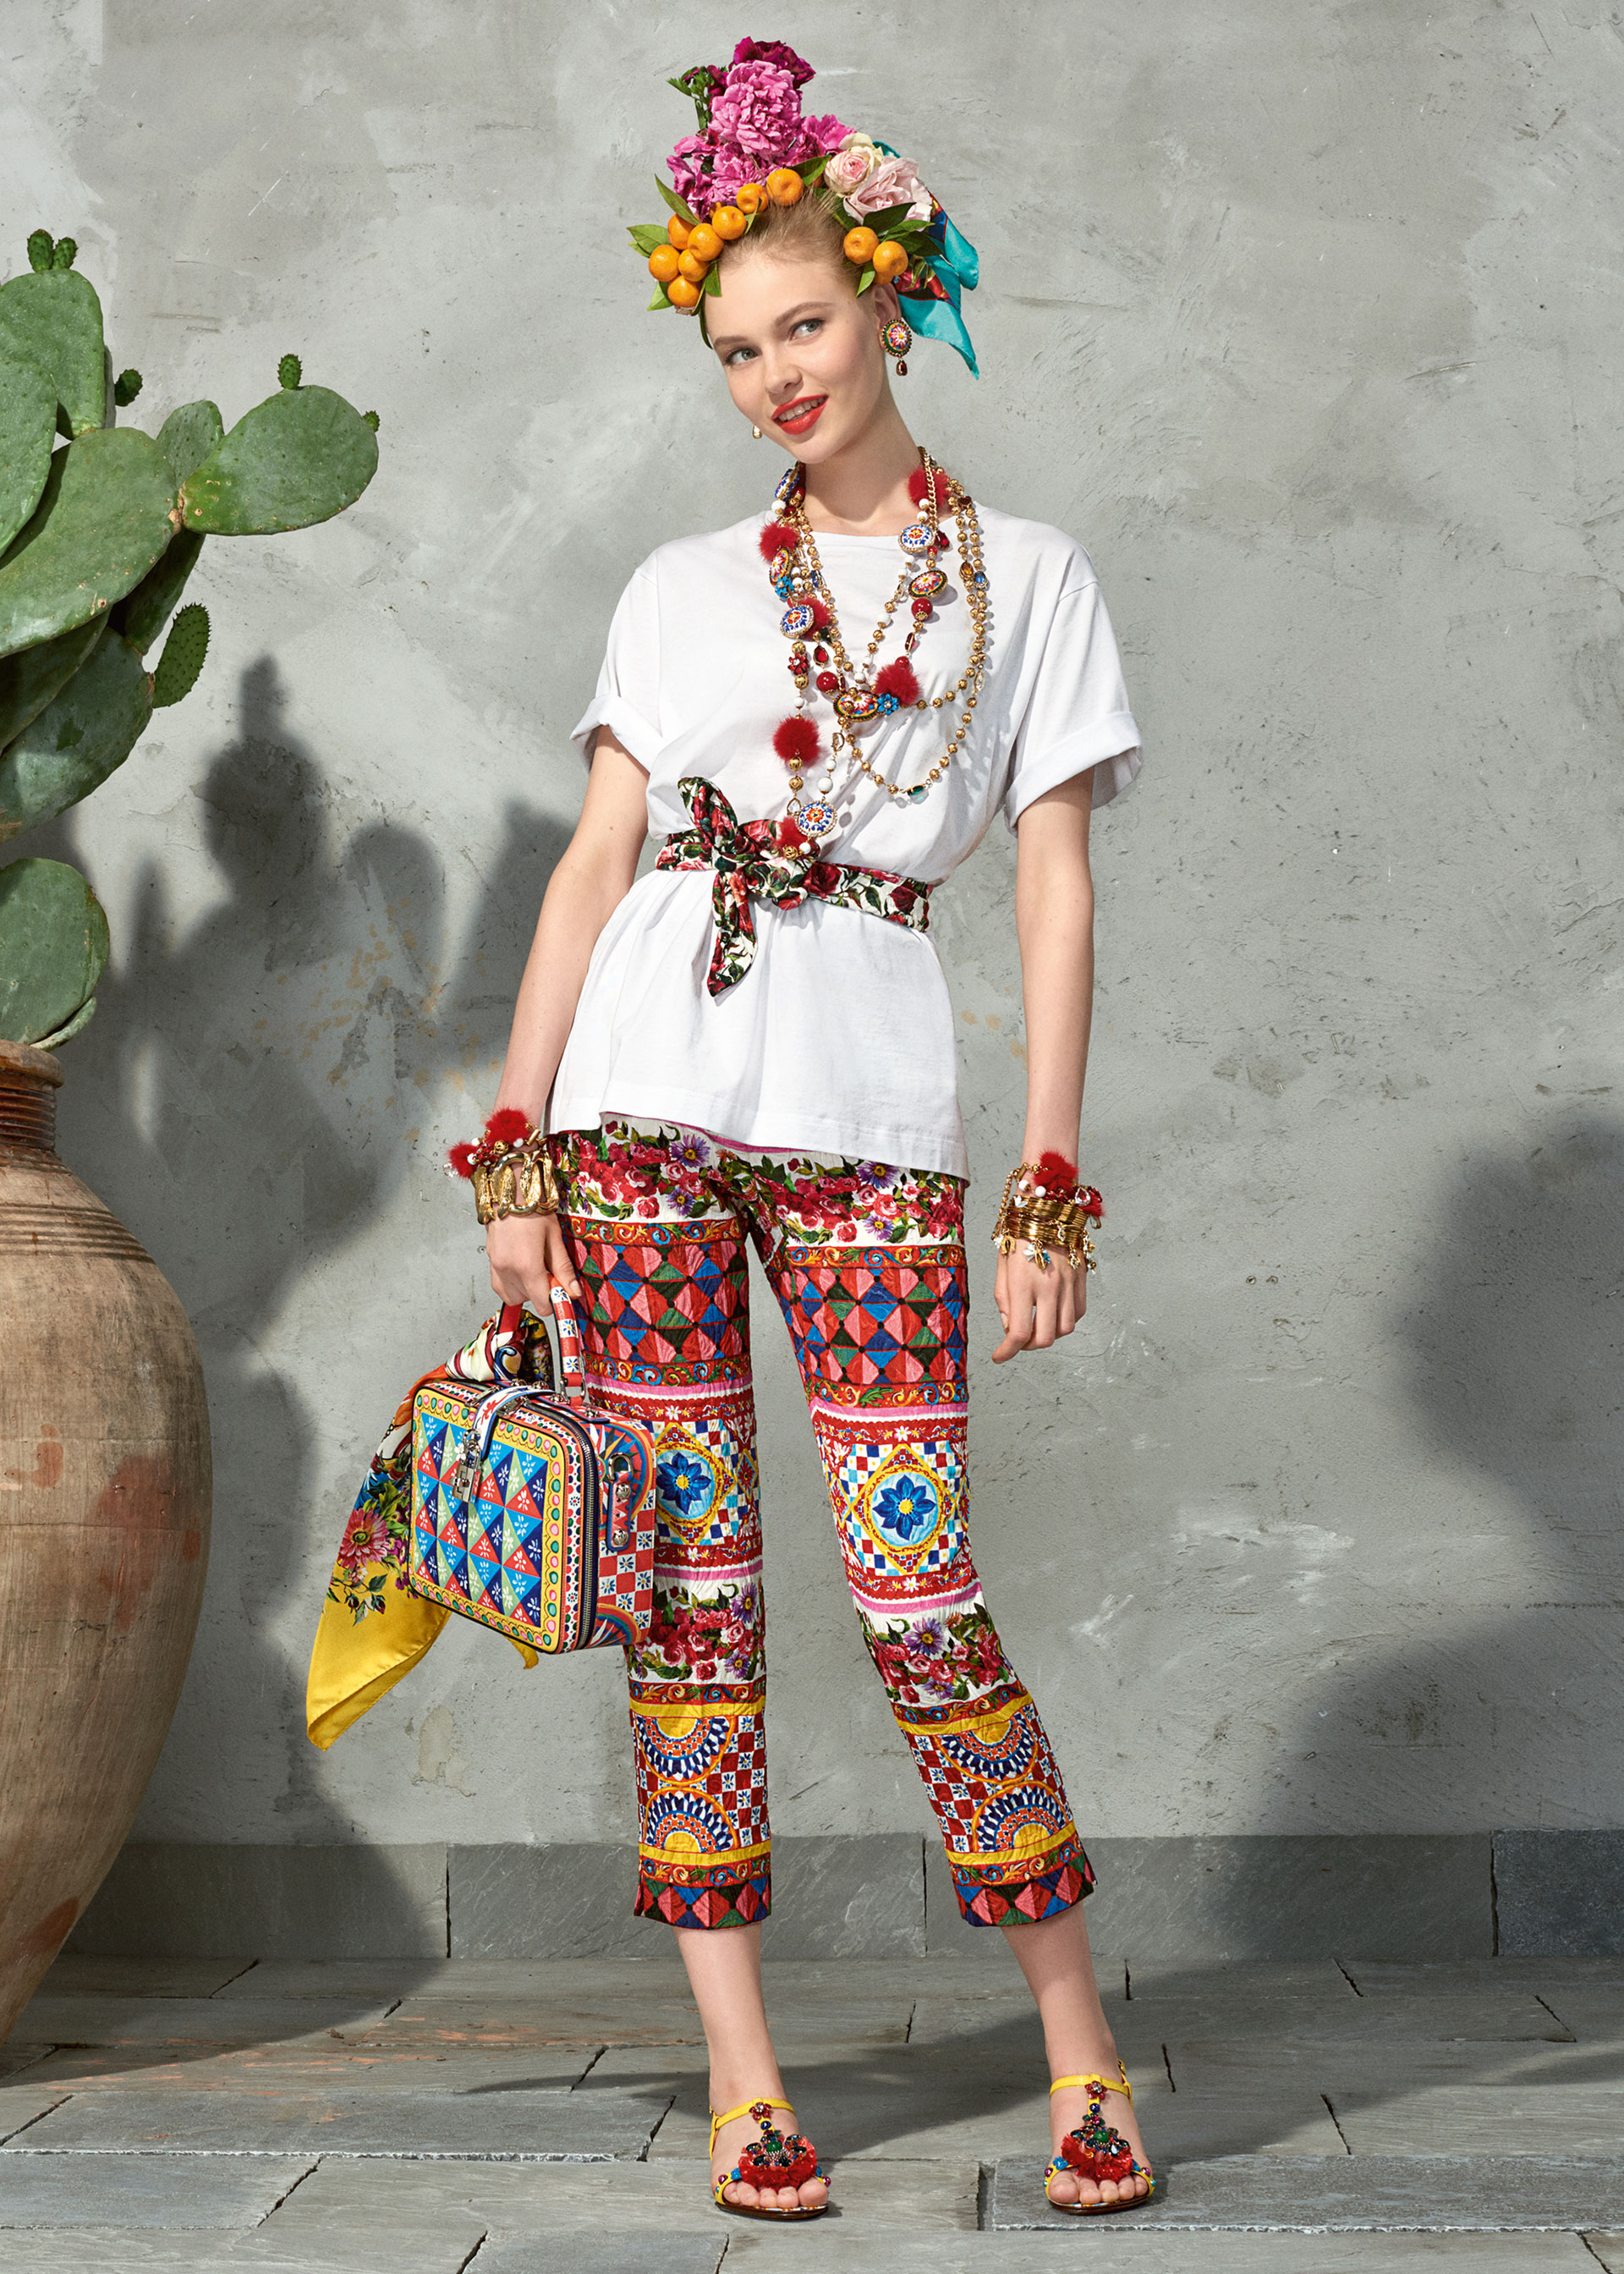 dolce and gabbana summer 2017 woman collection 107 - Dolce & Gabbana/Spring Summer 2017 Collection/ Mambo